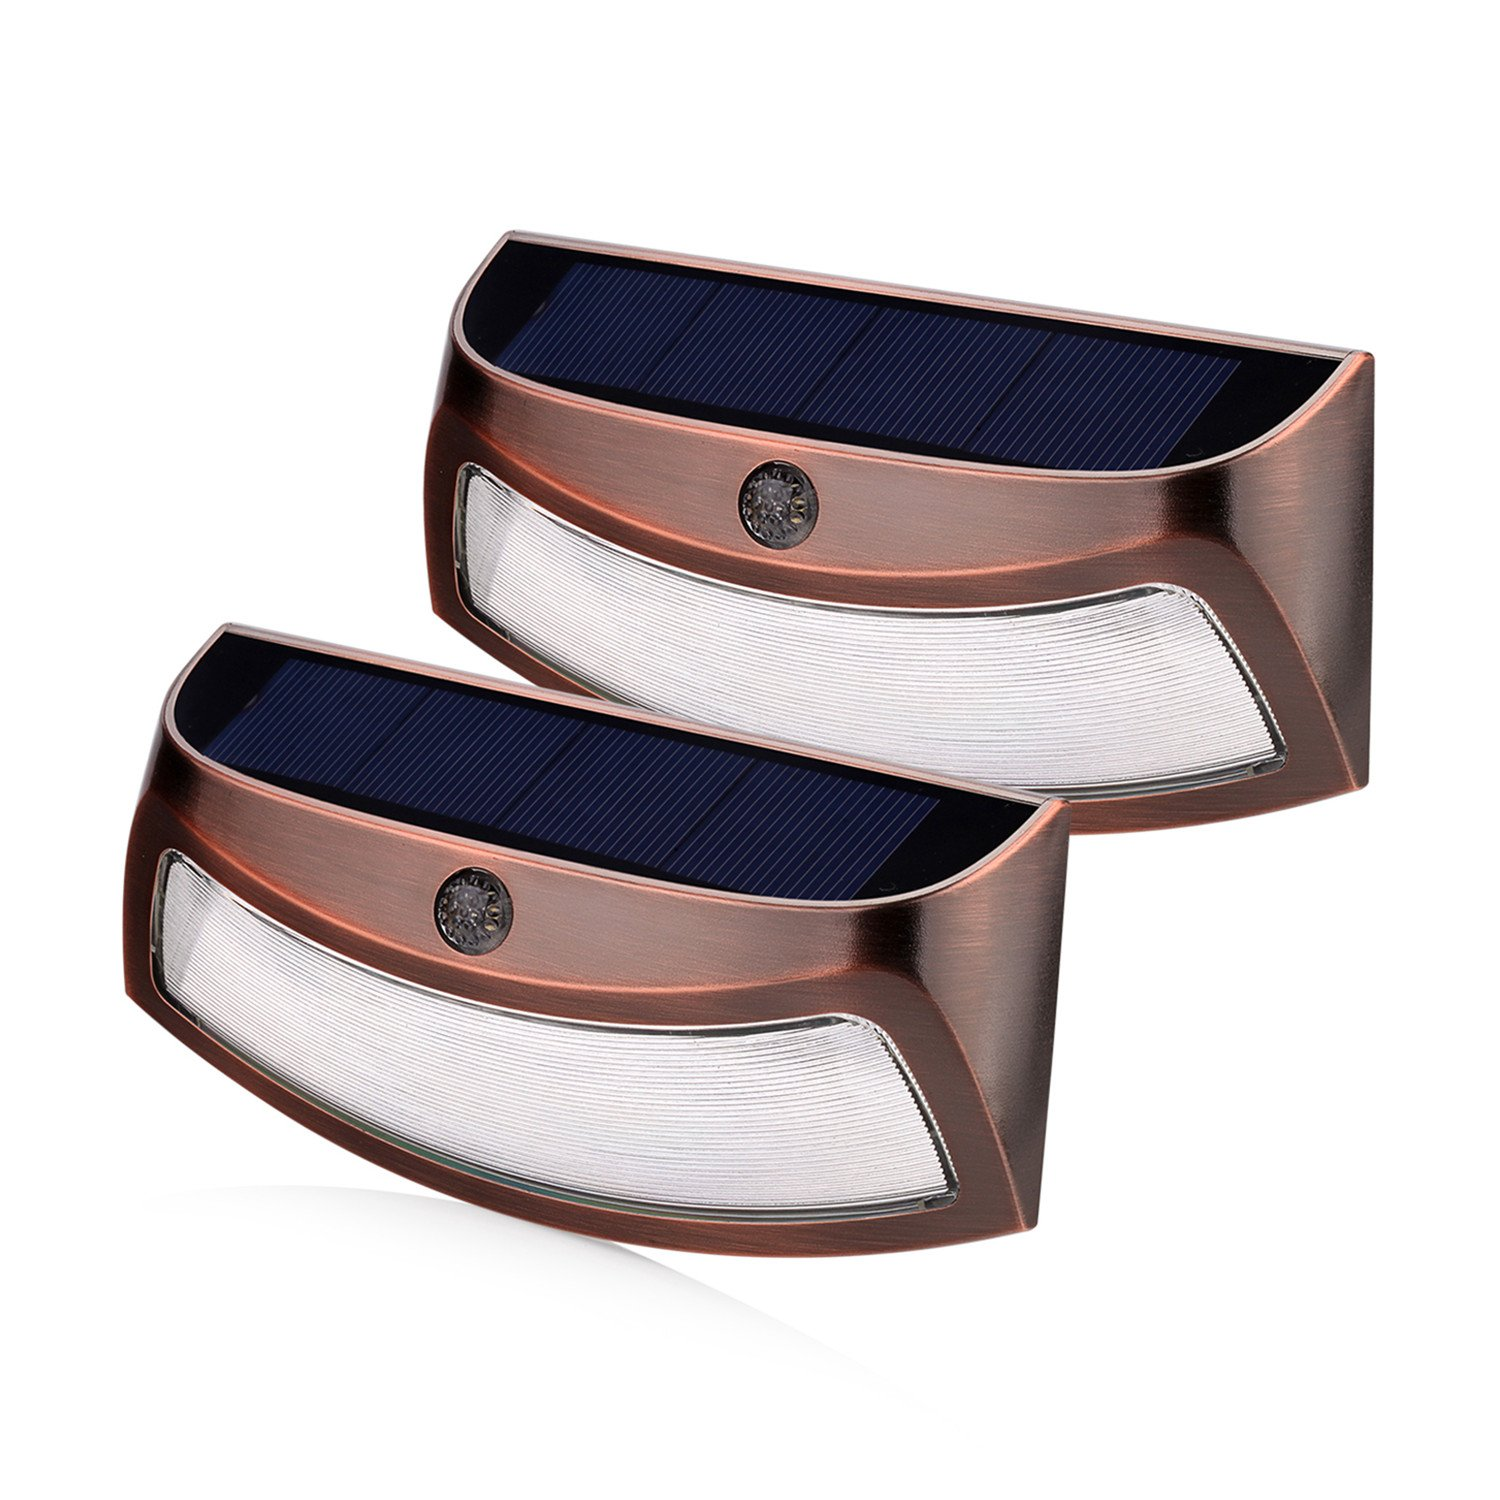 Solar Lights Outdoor, xtf2015 Copper Outdoor Step Lights, Wireless Waterproof LED Solar Lights for Stair, Patio, Yard, Fence, Walkways, Outside Wall - Auto On/Off(2 Pack, Warm White)